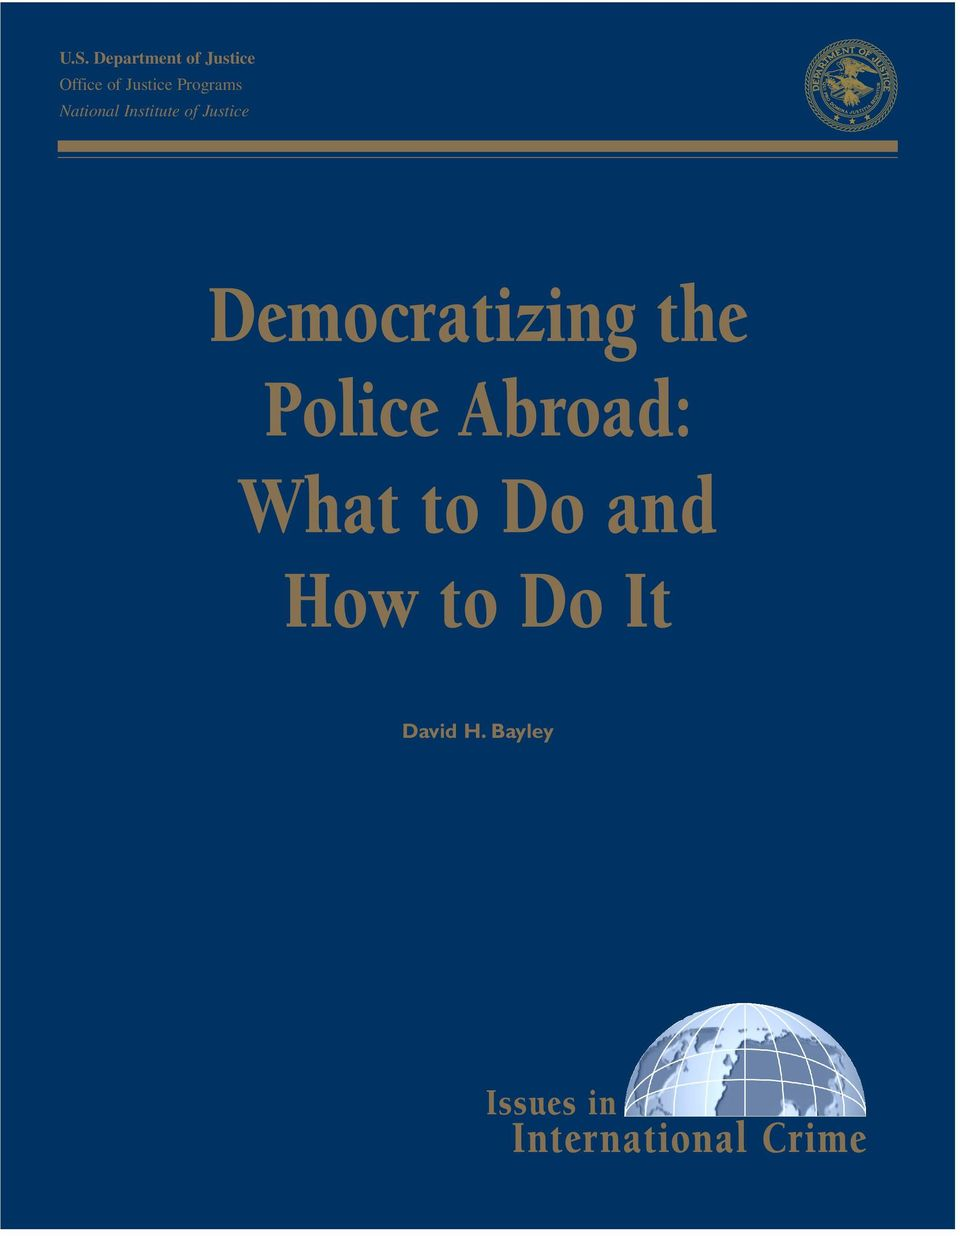 Democratizing the Police Abroad: What to Do and